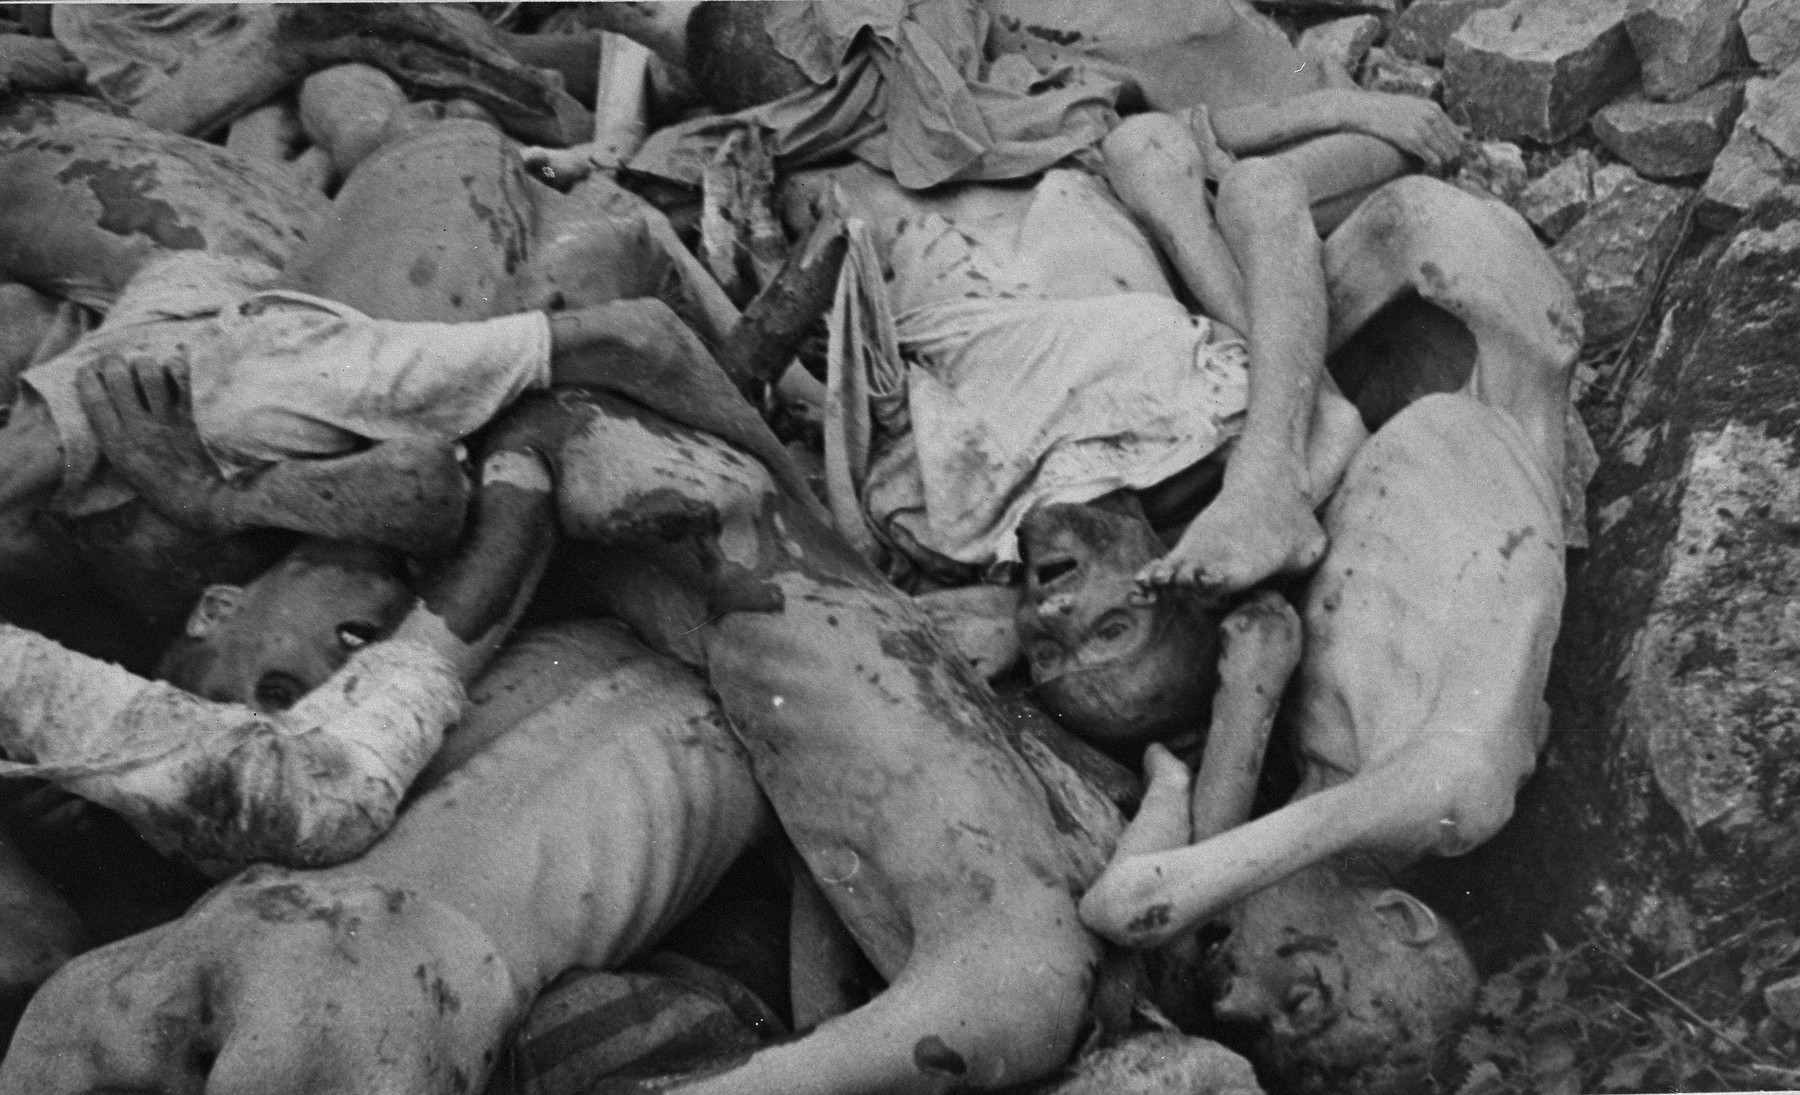 The corpses of prisoners killed in Buchenwald.